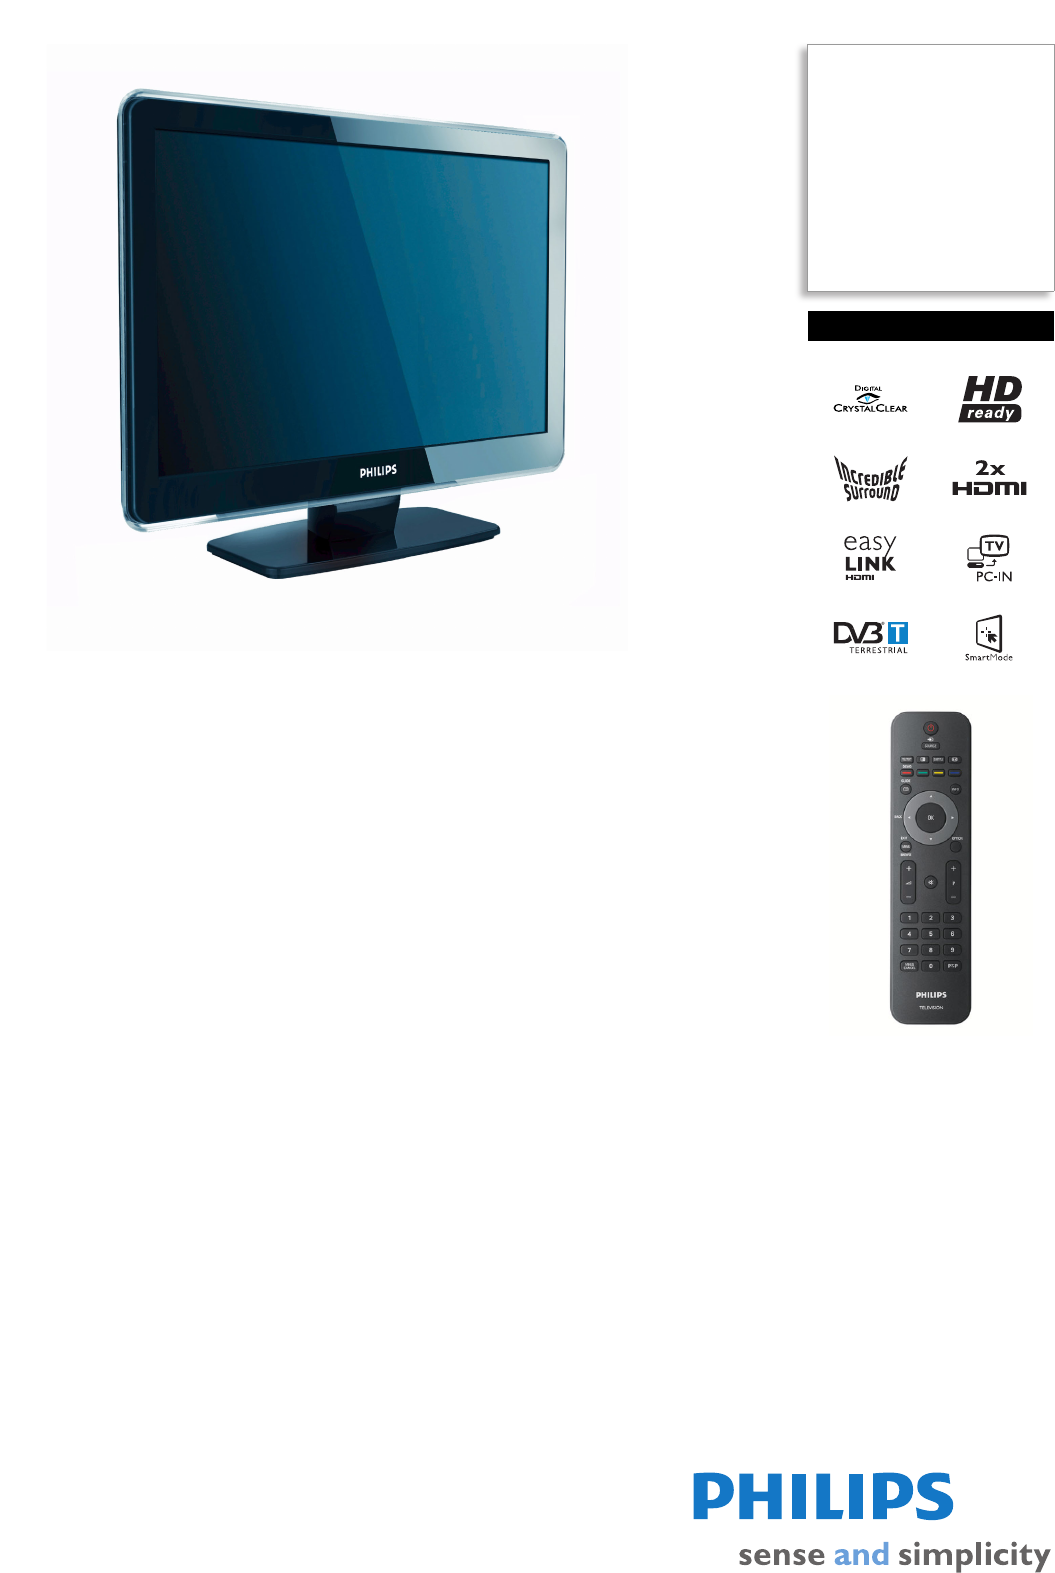 philips flat panel television 22pfl5403s user guide manualsonline com rh tv manualsonline com user manual for philips voice tracer 4100 user guide for philips tv